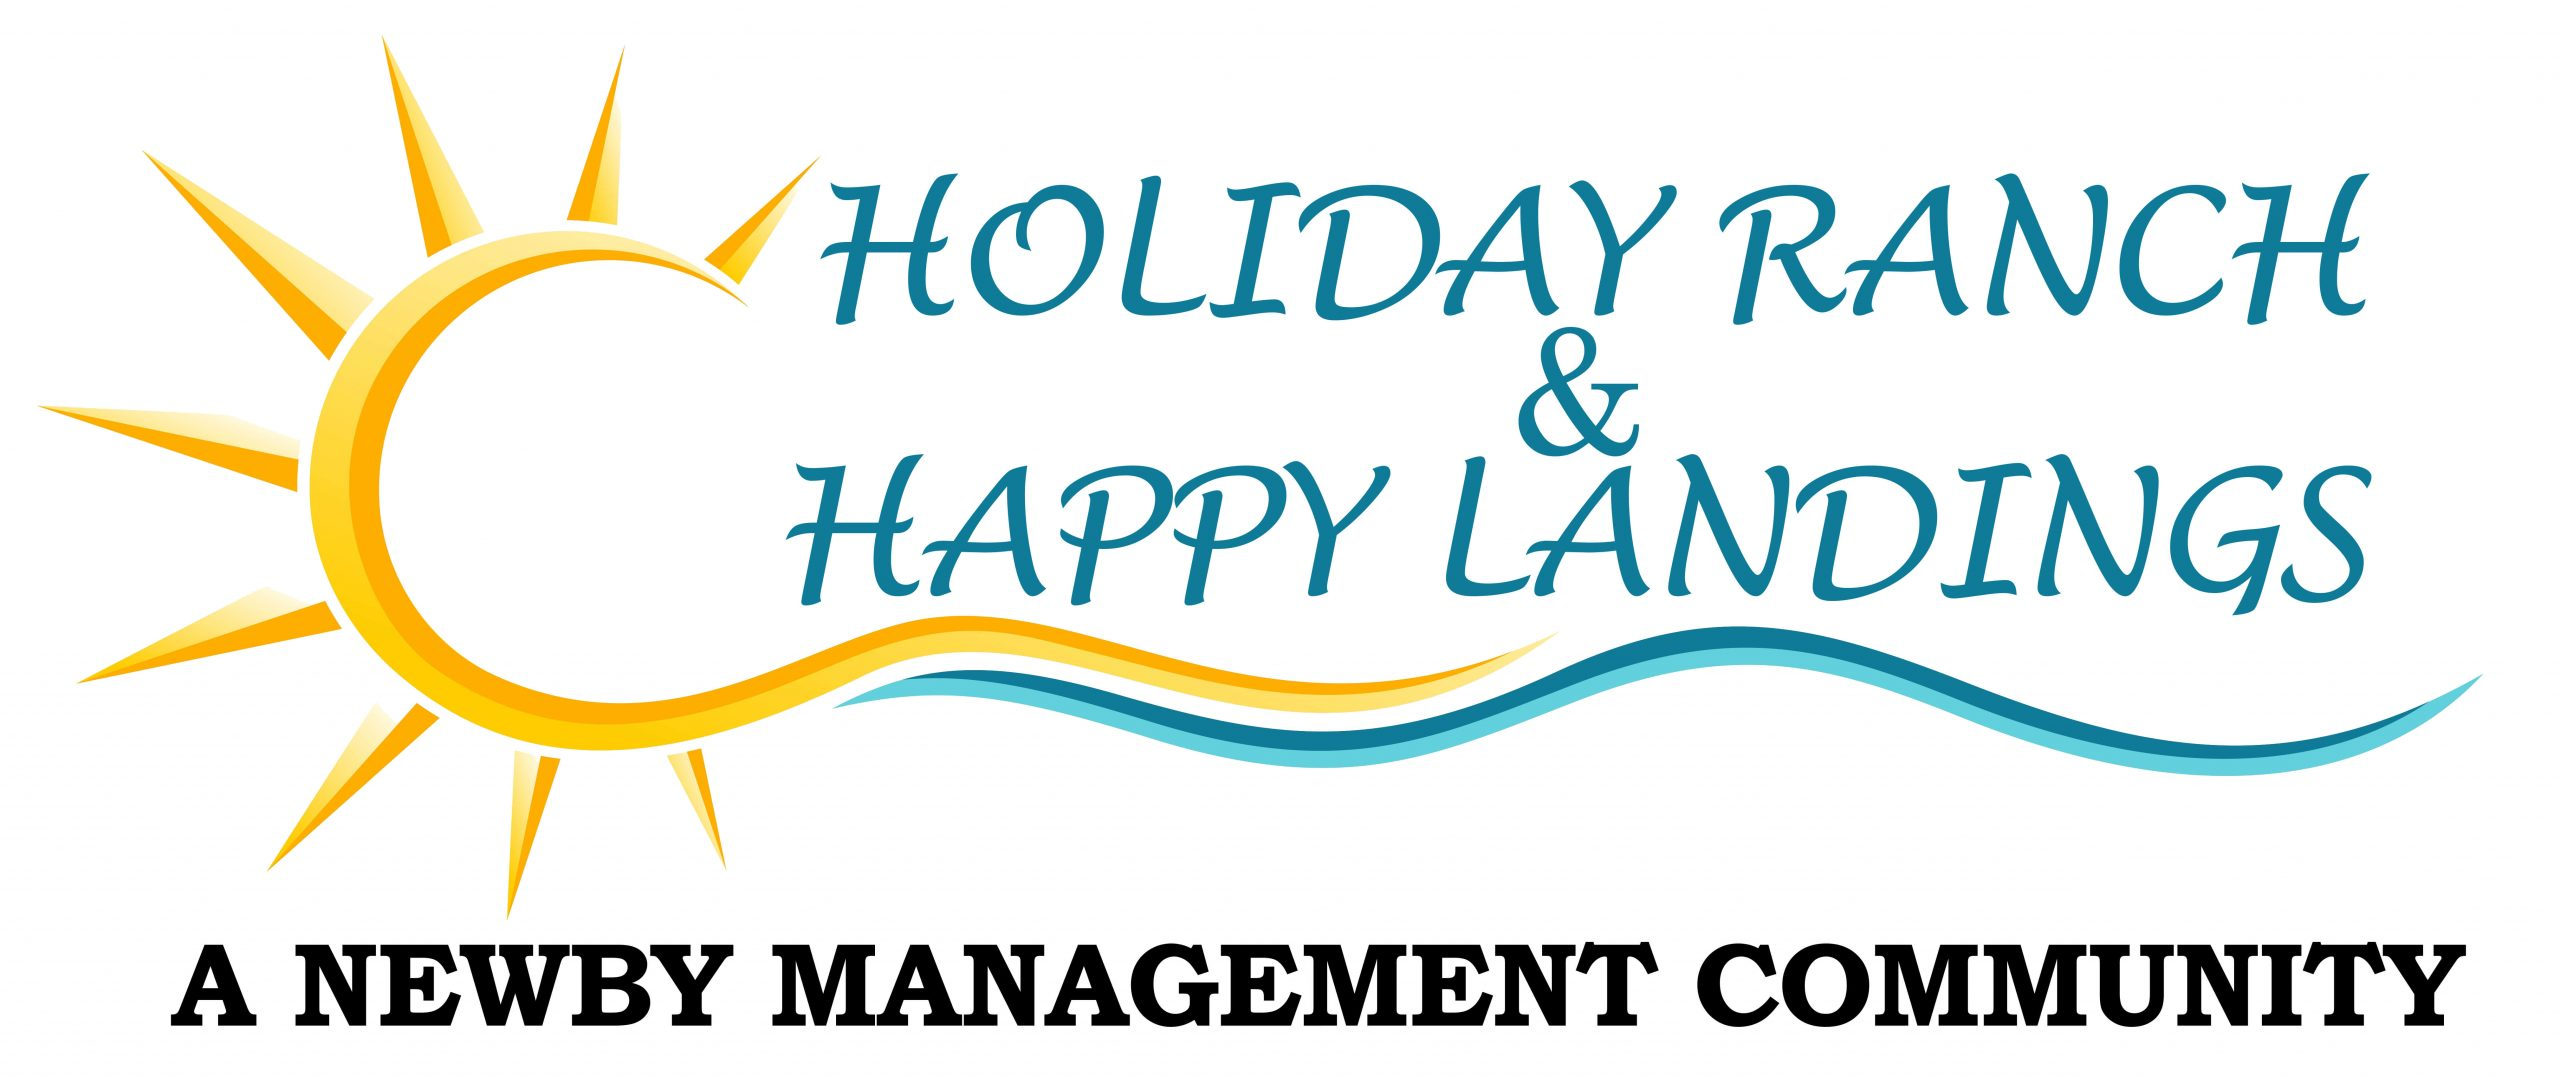 Holiday Ranch & Happy Landings